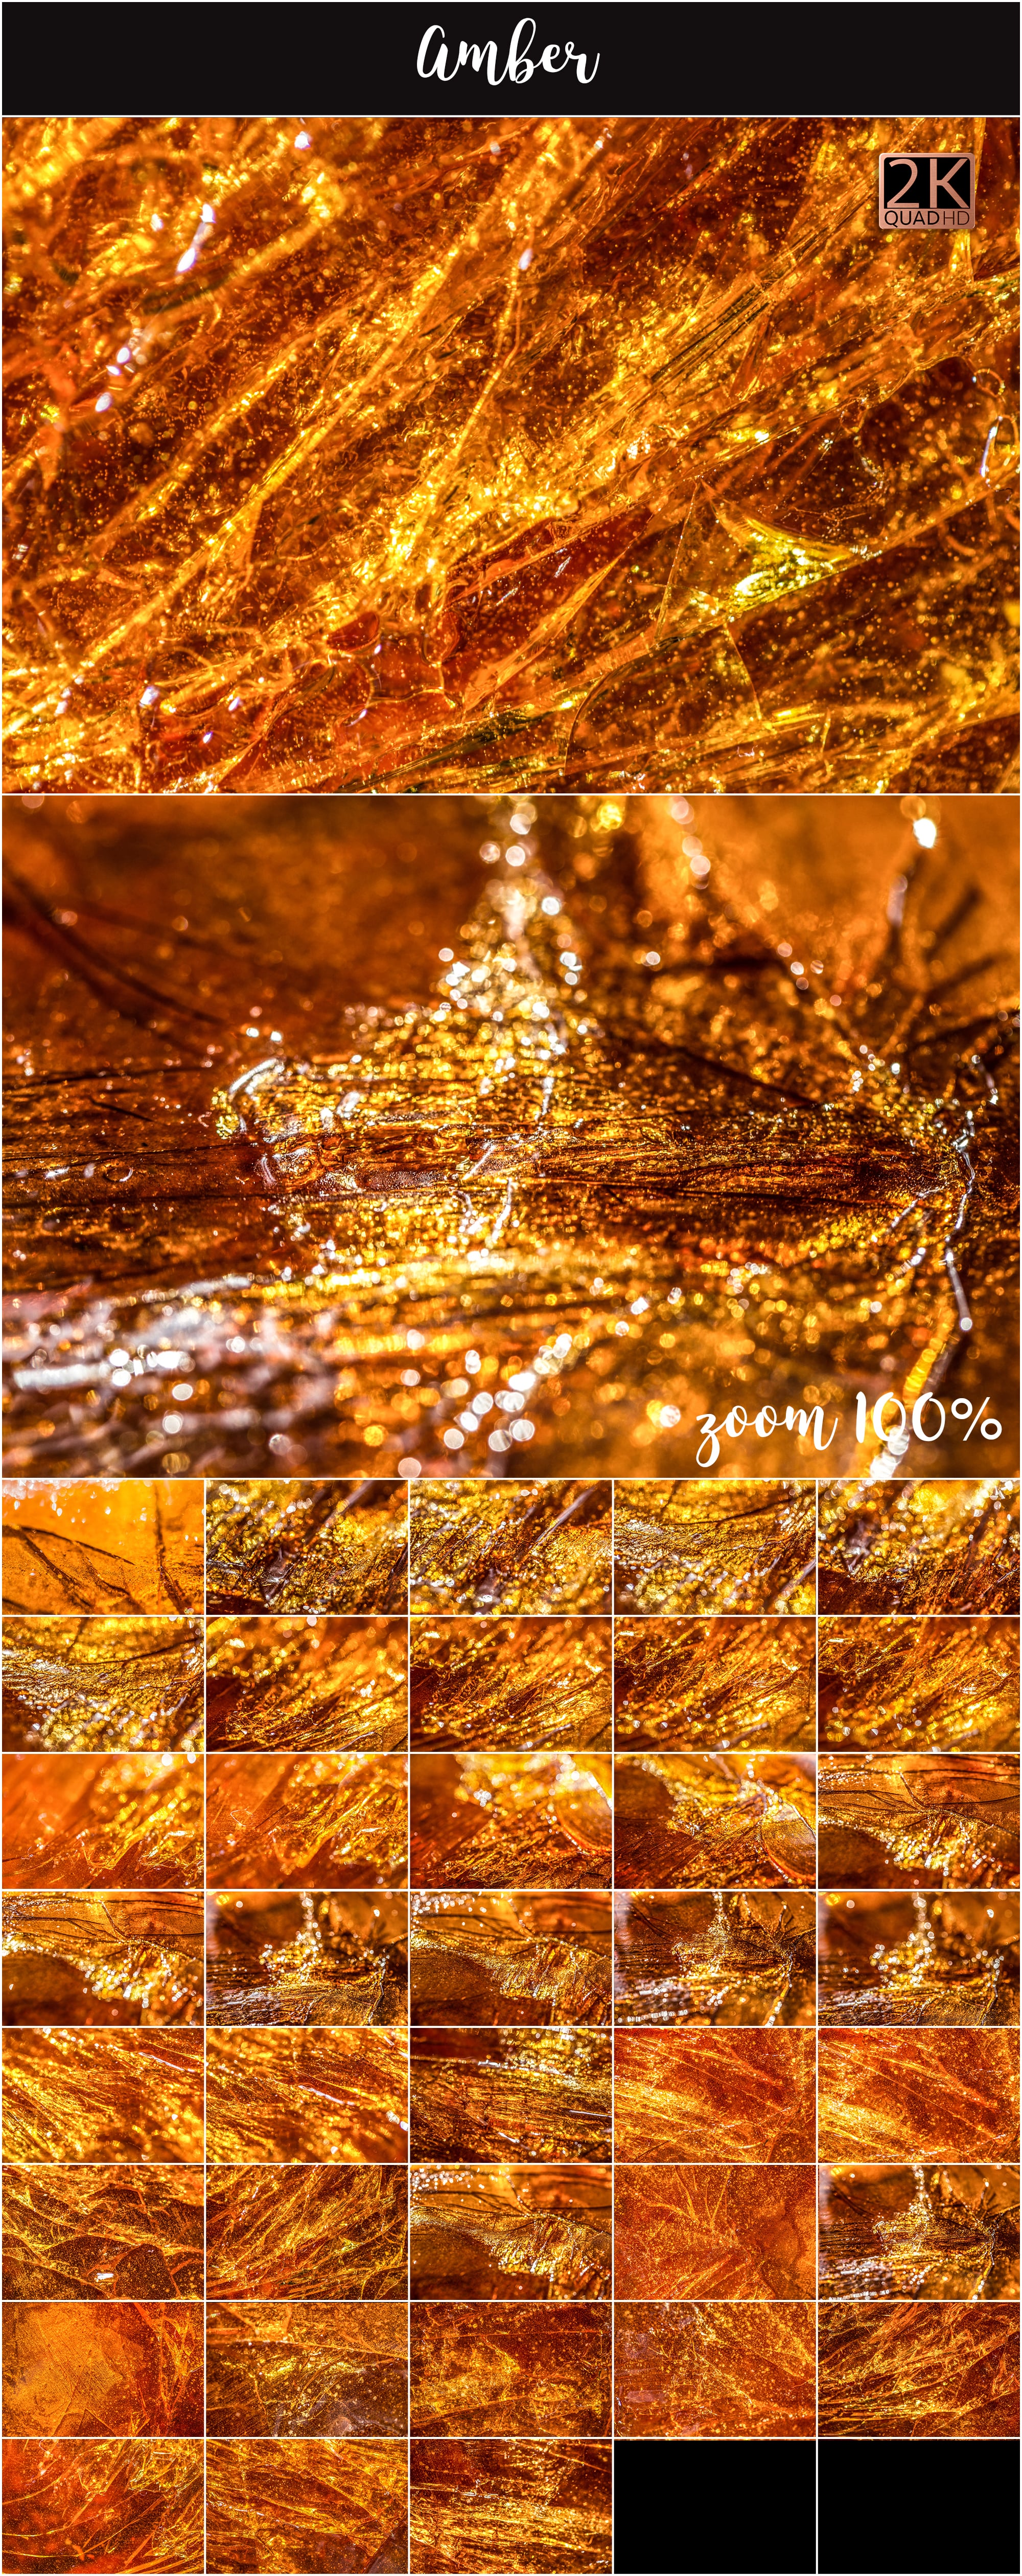 1053 Spectacular Overlays png - Only $18! - 5 Amber